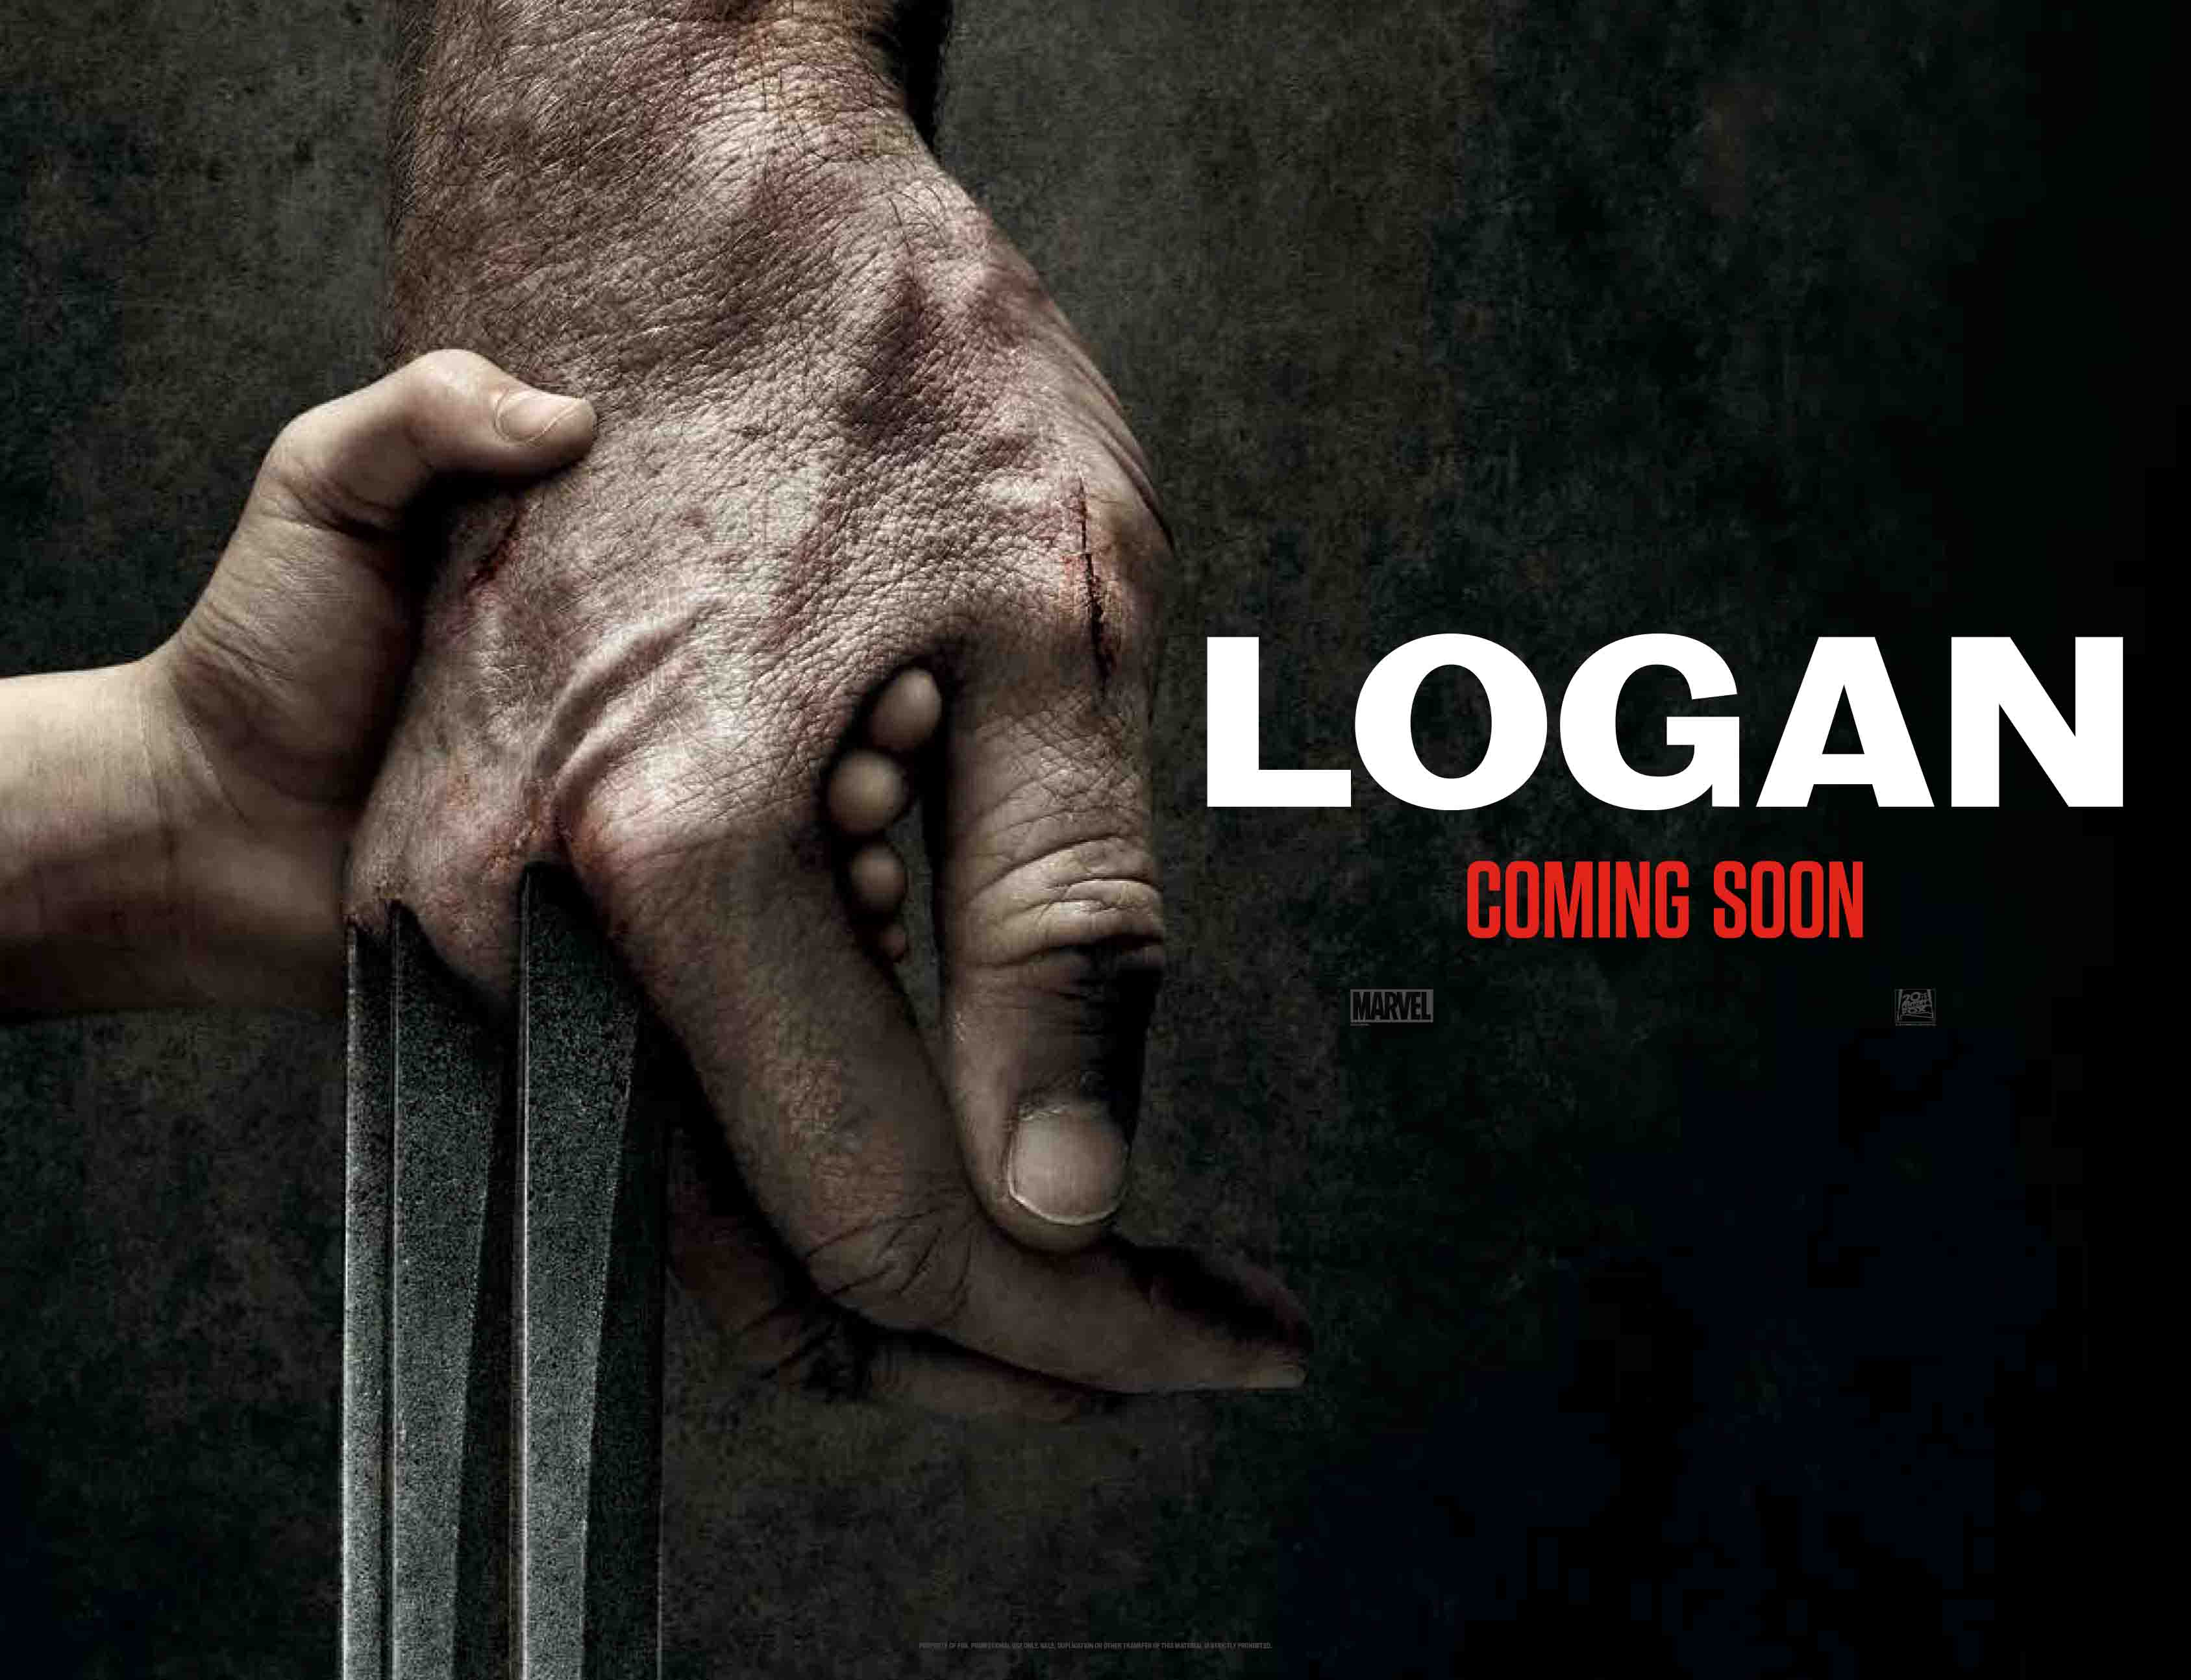 'Logan' Synopsis Says Wolverine Must Face His Legacy